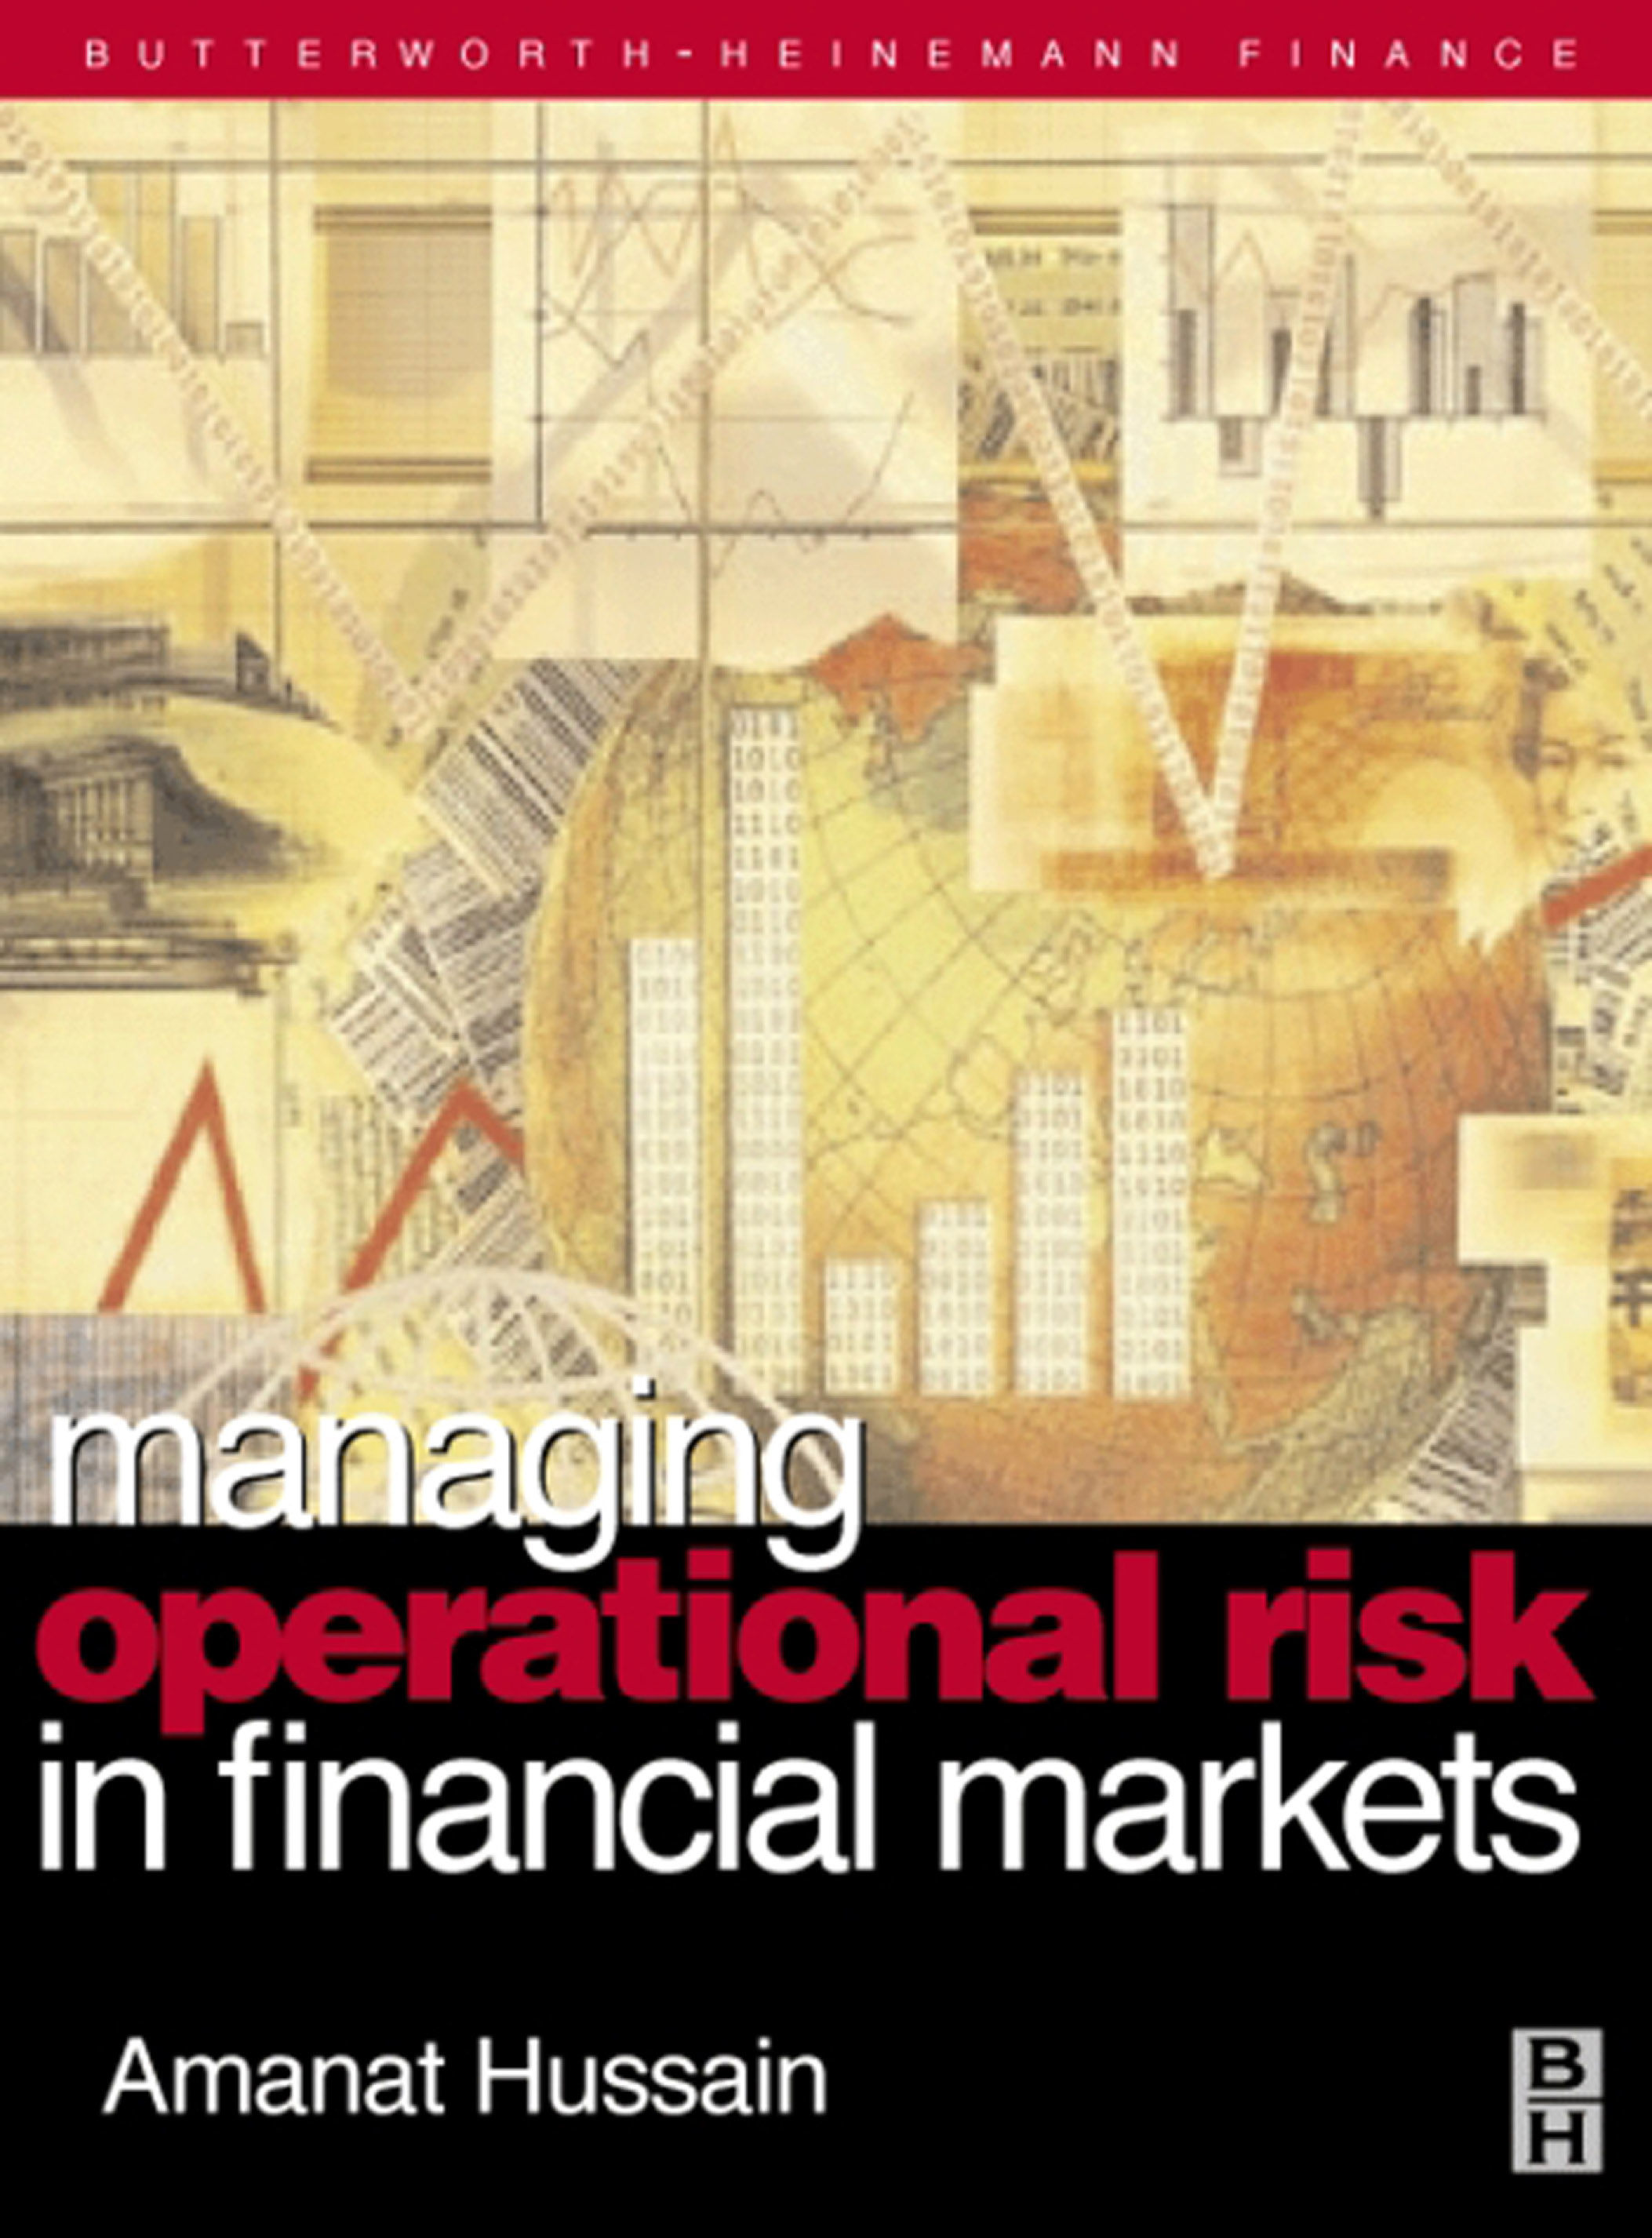 Download Ebook Managing Operational Risk in Financial Markets by Amanat Hussain Pdf